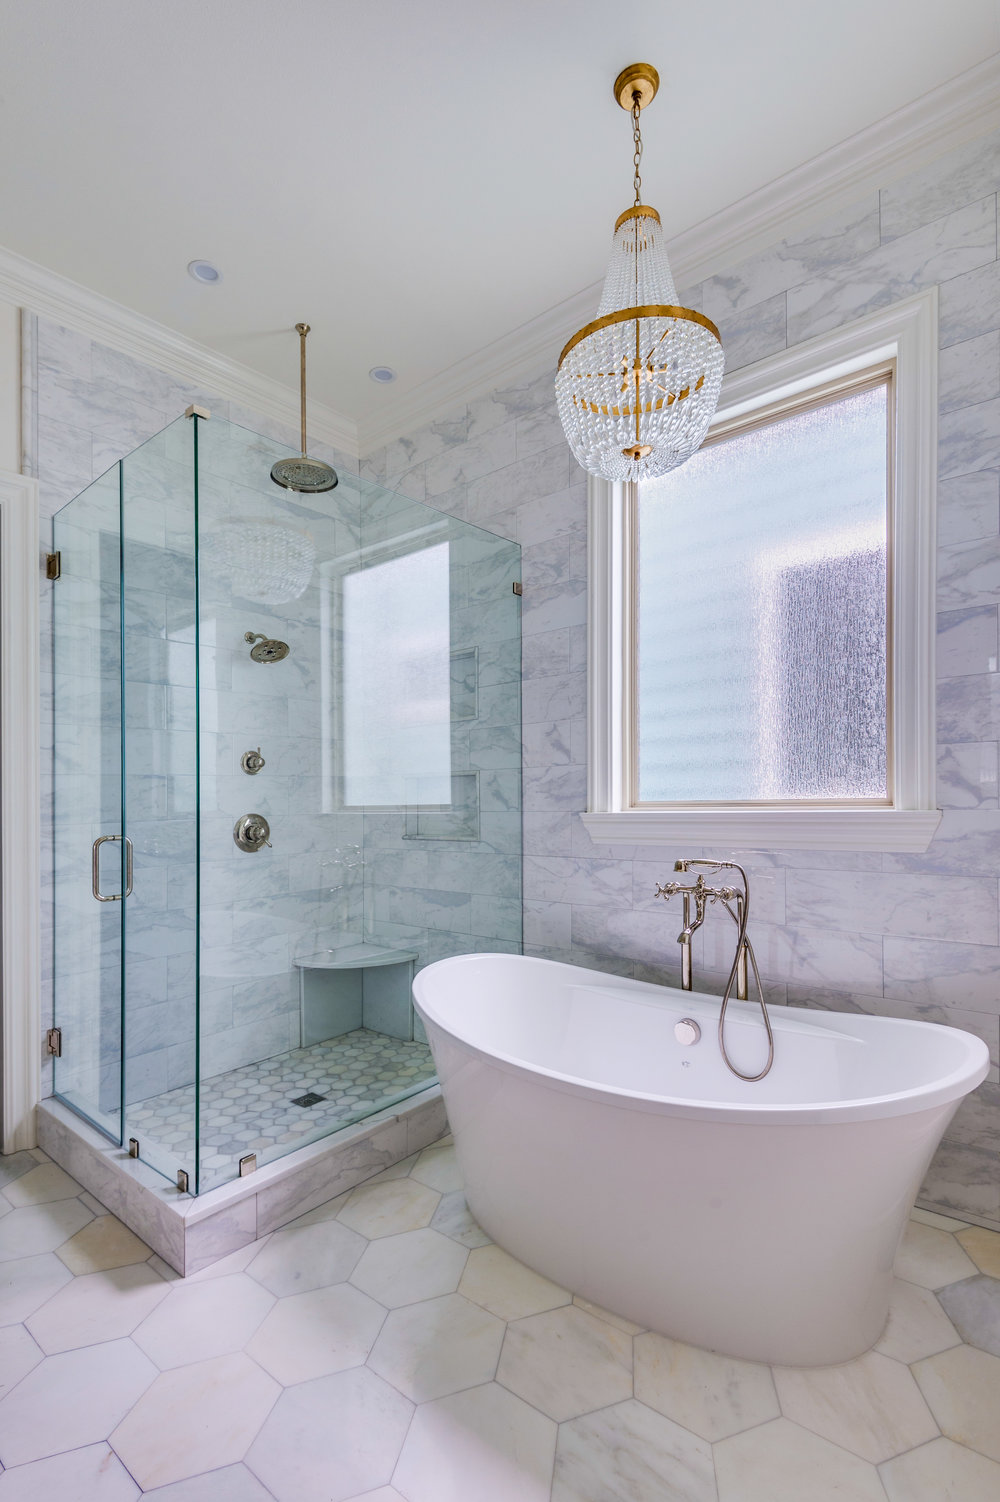 KHB Interiors master bathroom design new construction metairie new orleans interior designer lakeview .jpg